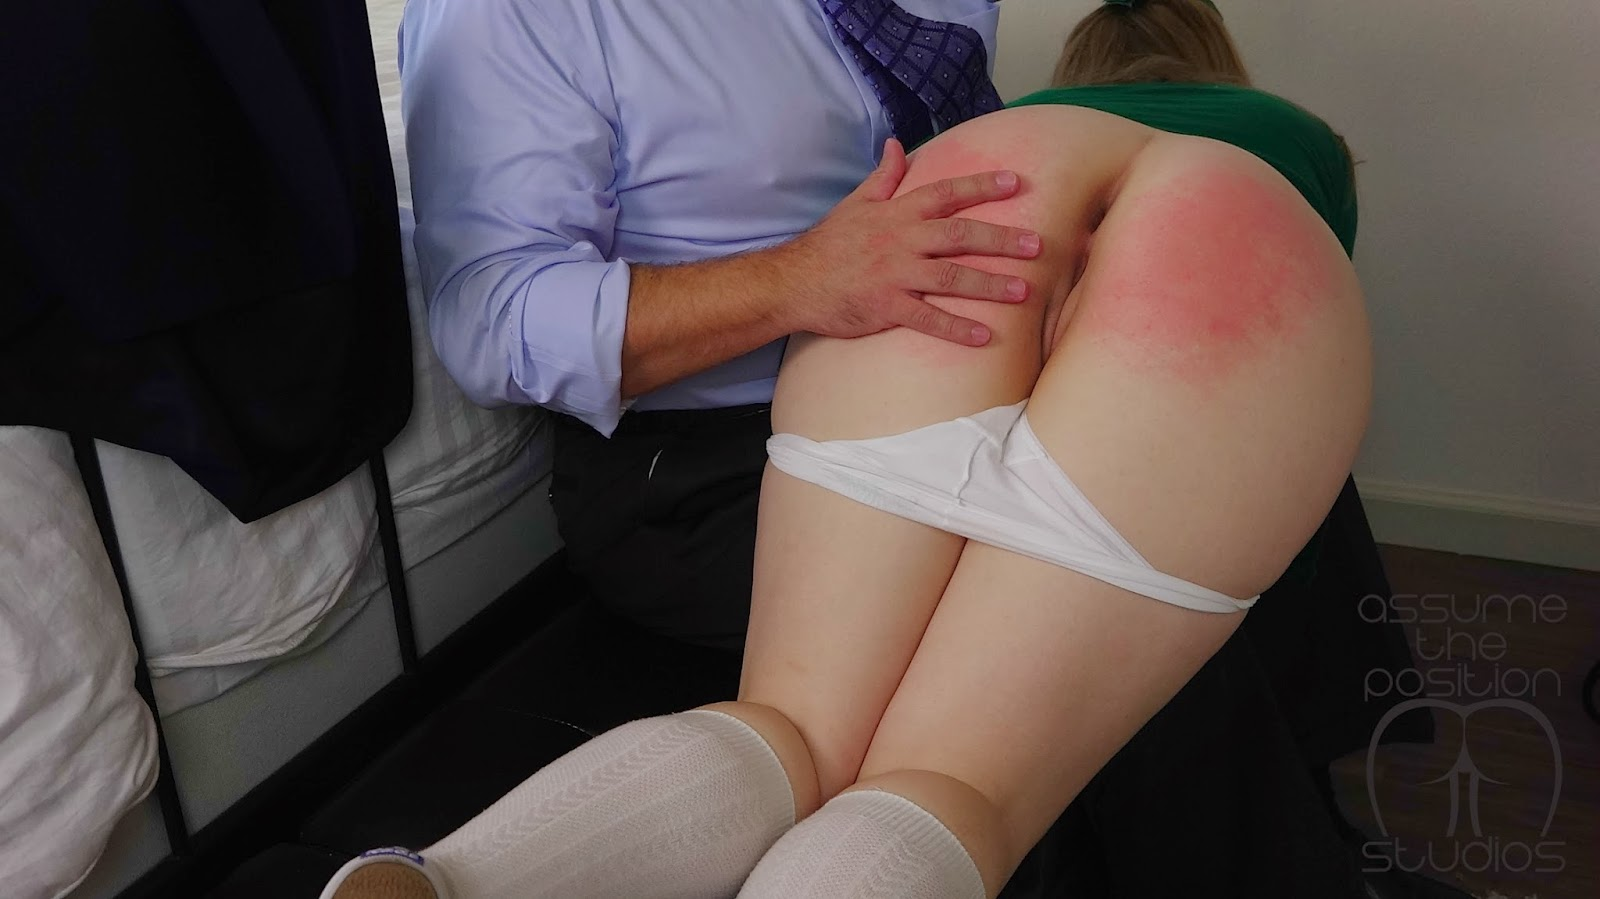 More Spanked my bare ass